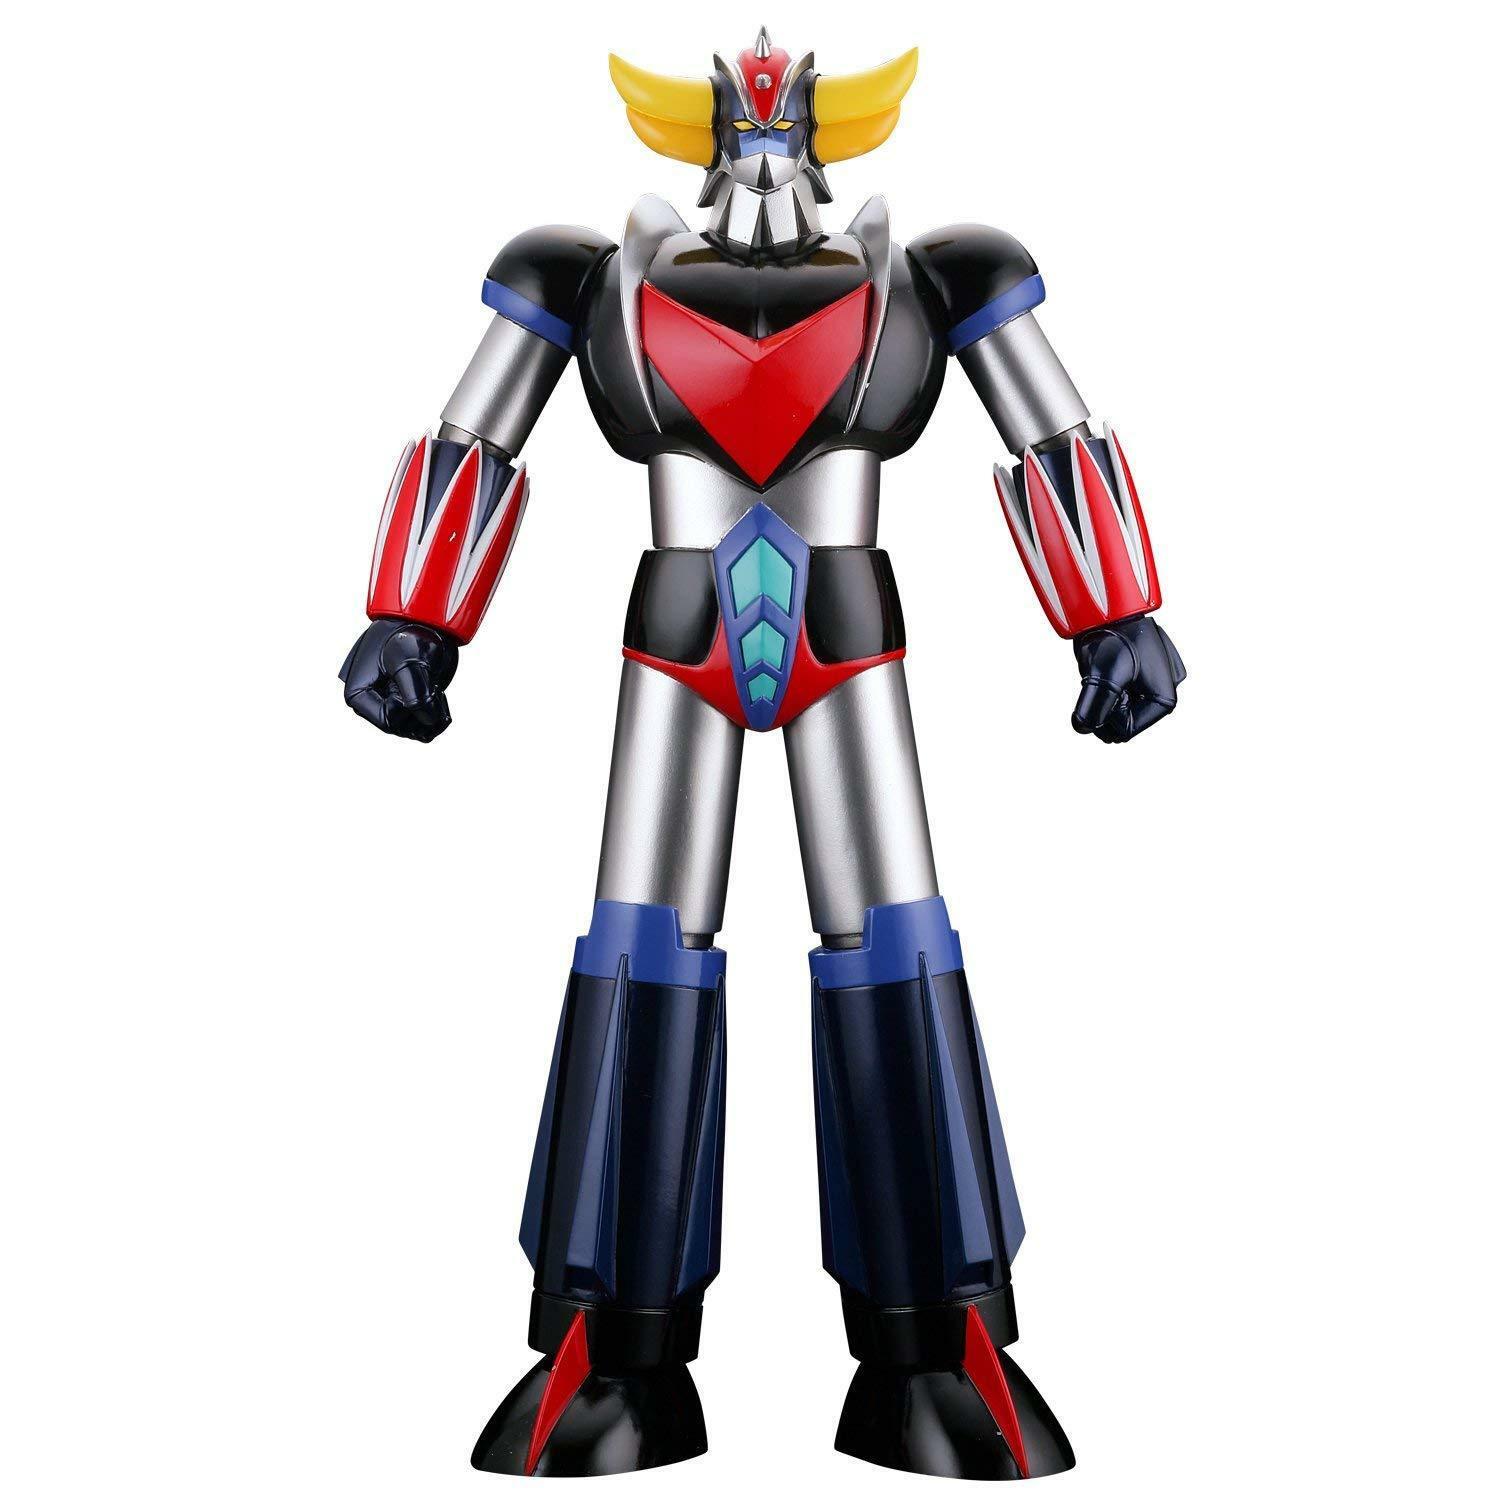 Kaiyodo Robot Figure Grendizer Soft Vinyl Toy Box Hi-LINE 006 UFO from Japan F S